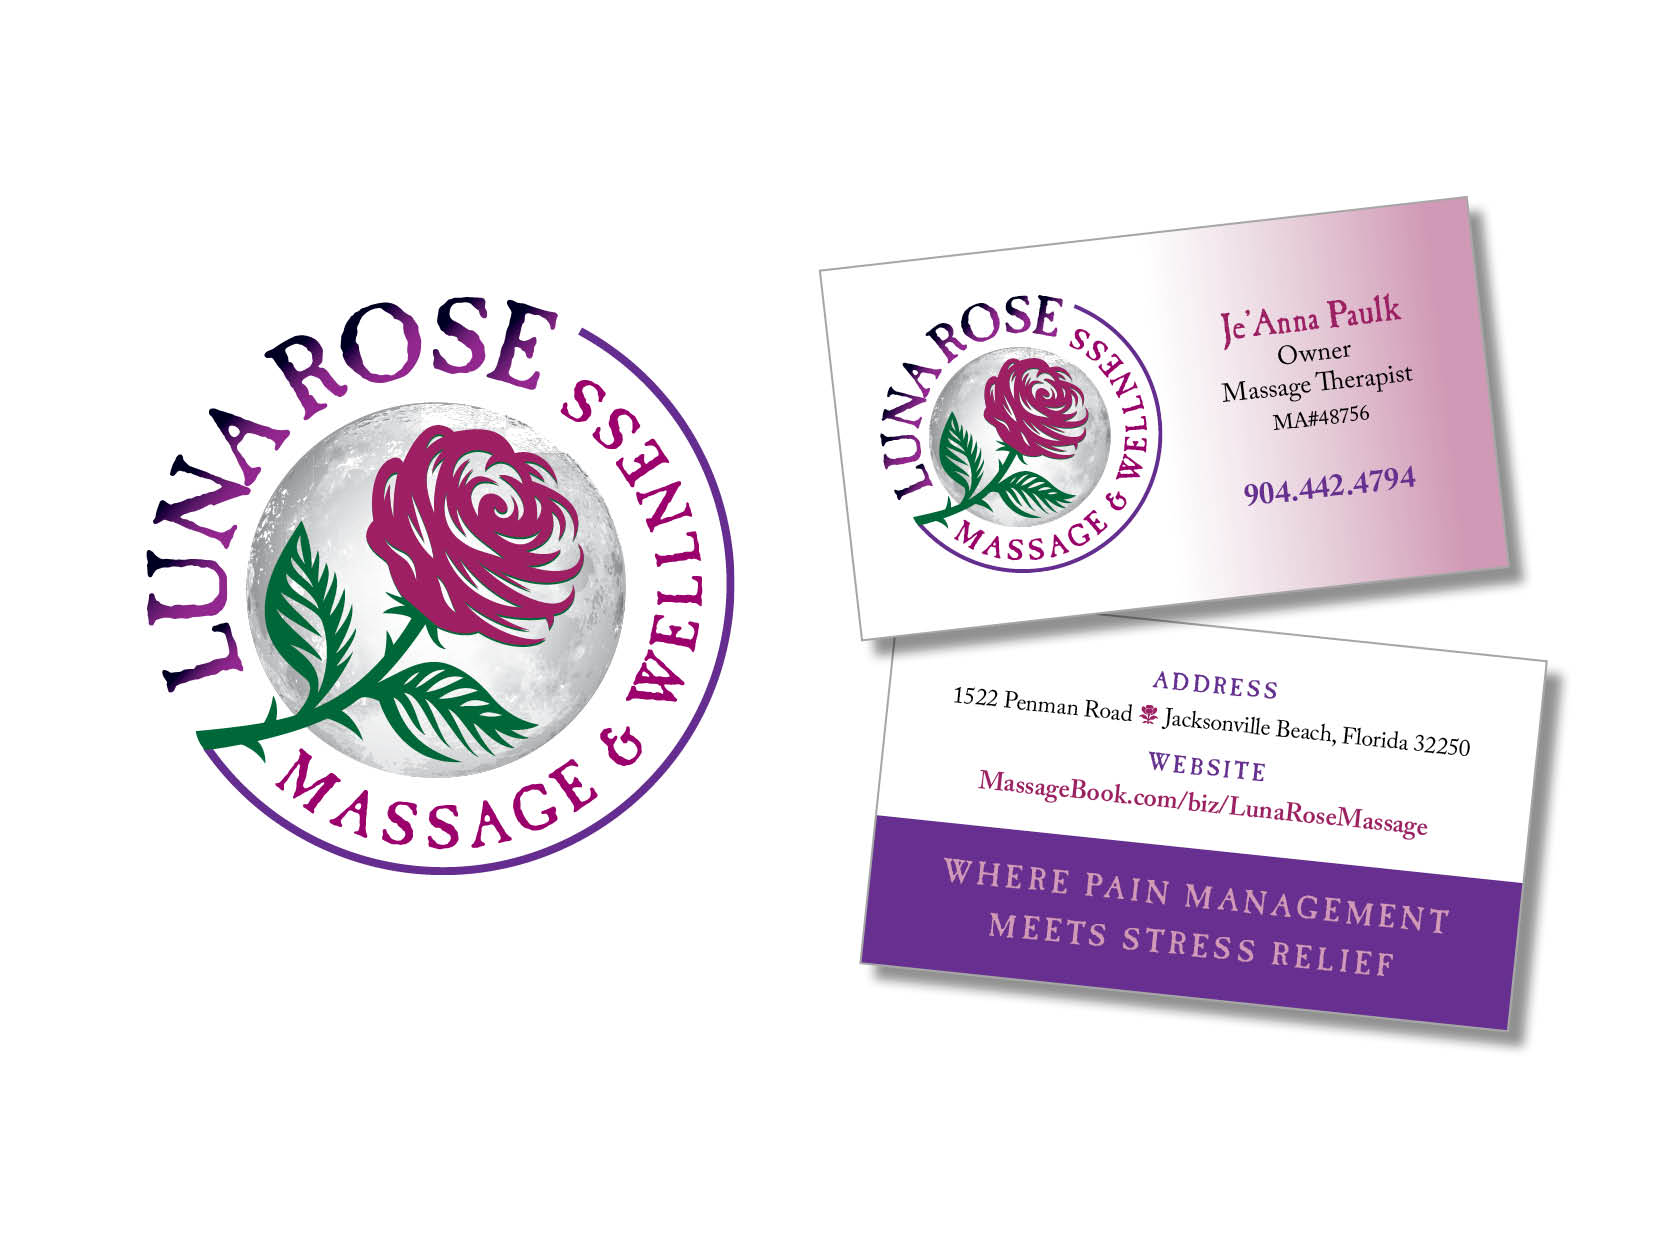 luna rose massage graphics